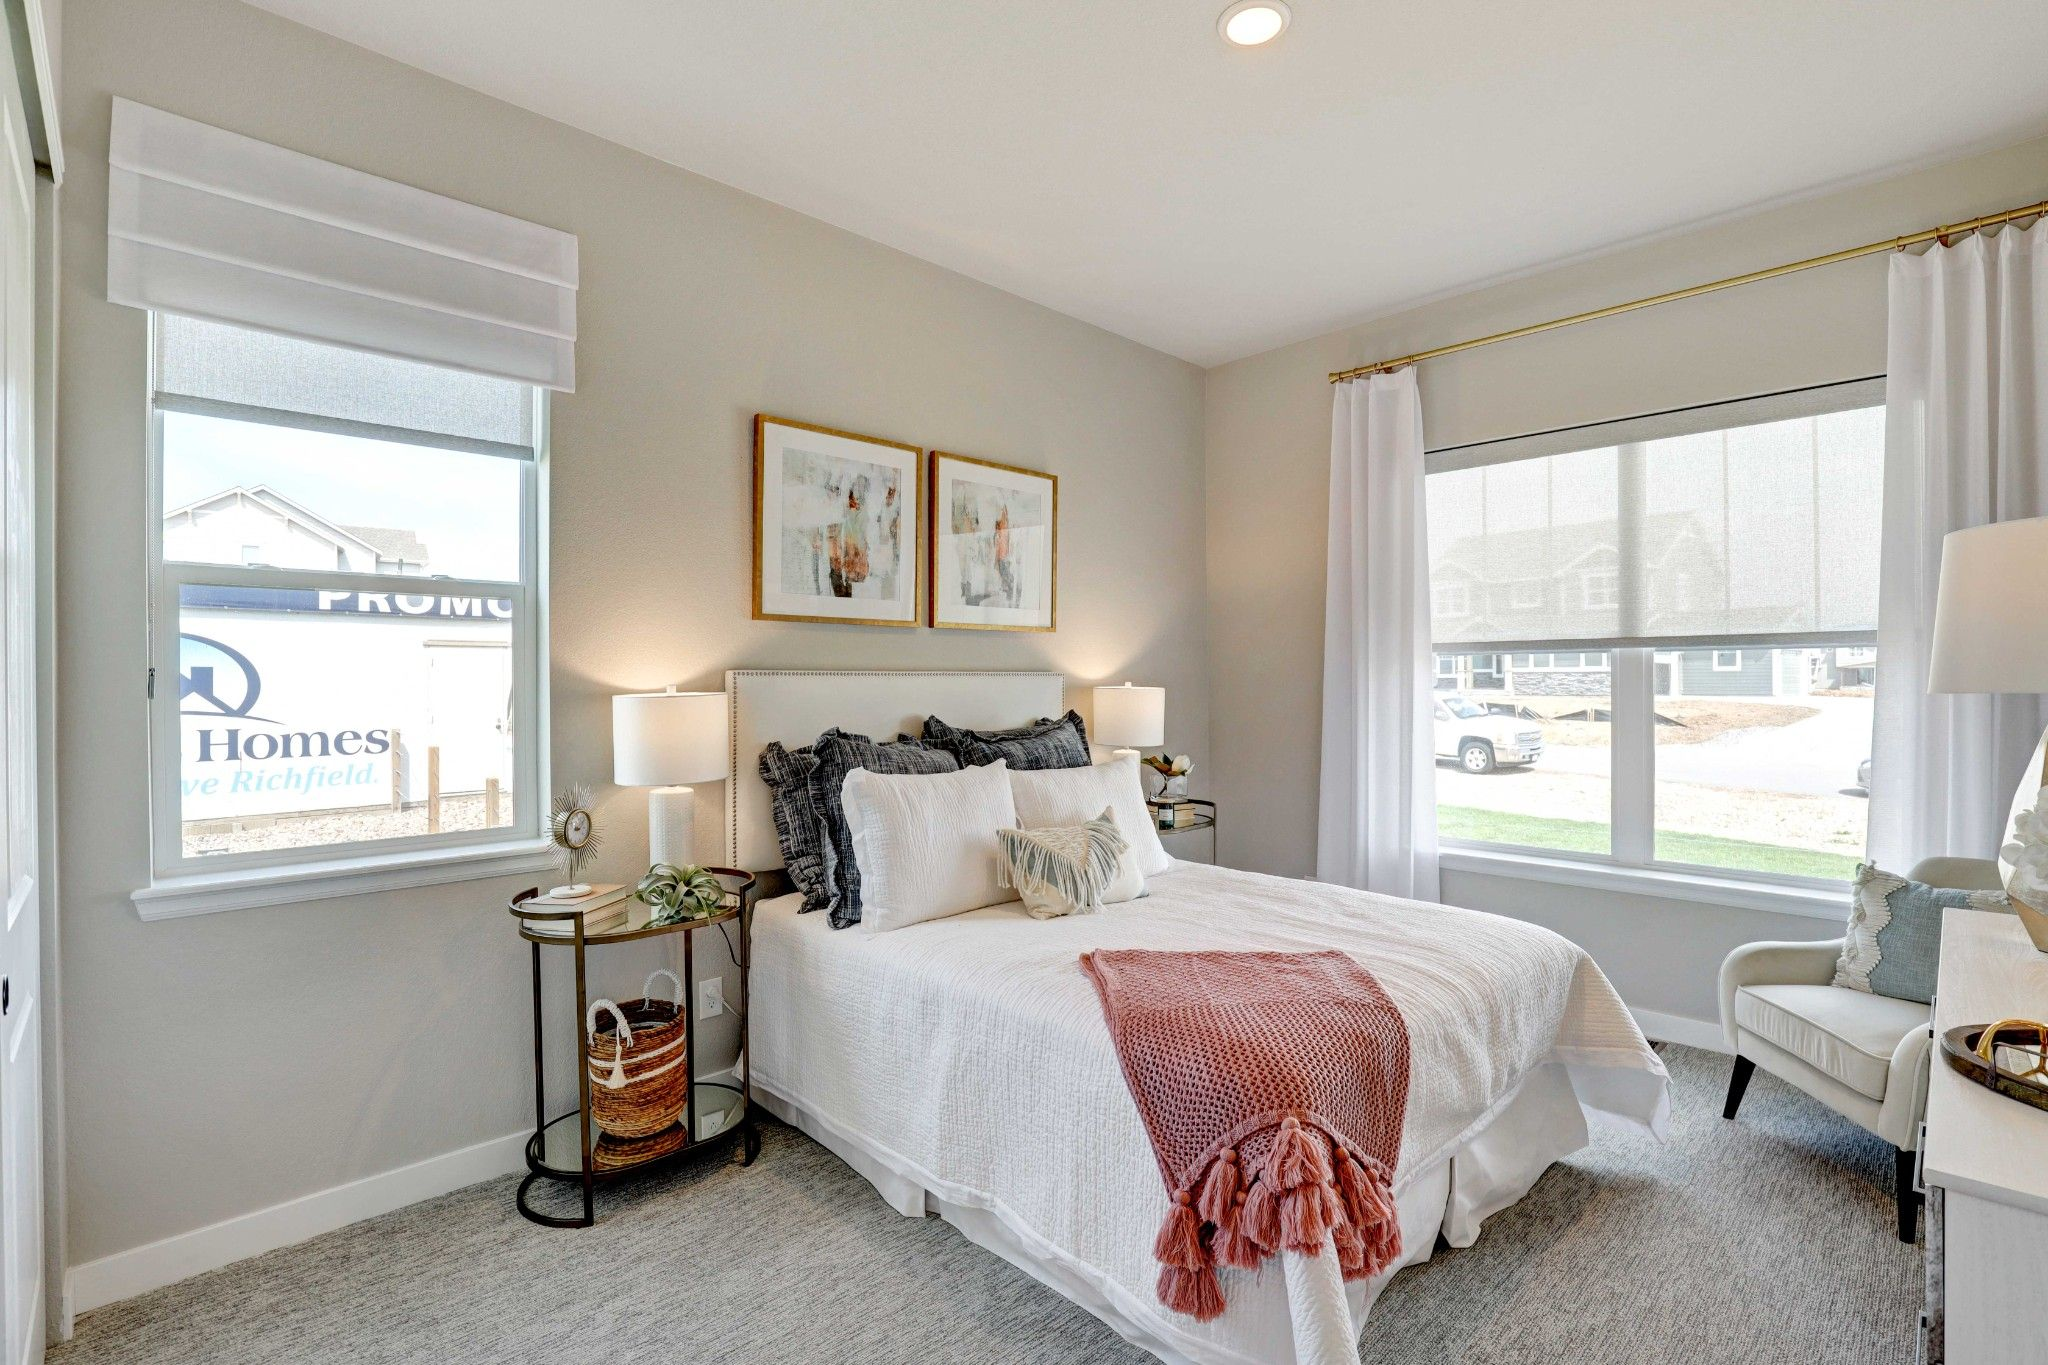 Bedroom featured in the Penrose - Saddler Ridge By RichfieldHomes in Fort Collins-Loveland, CO